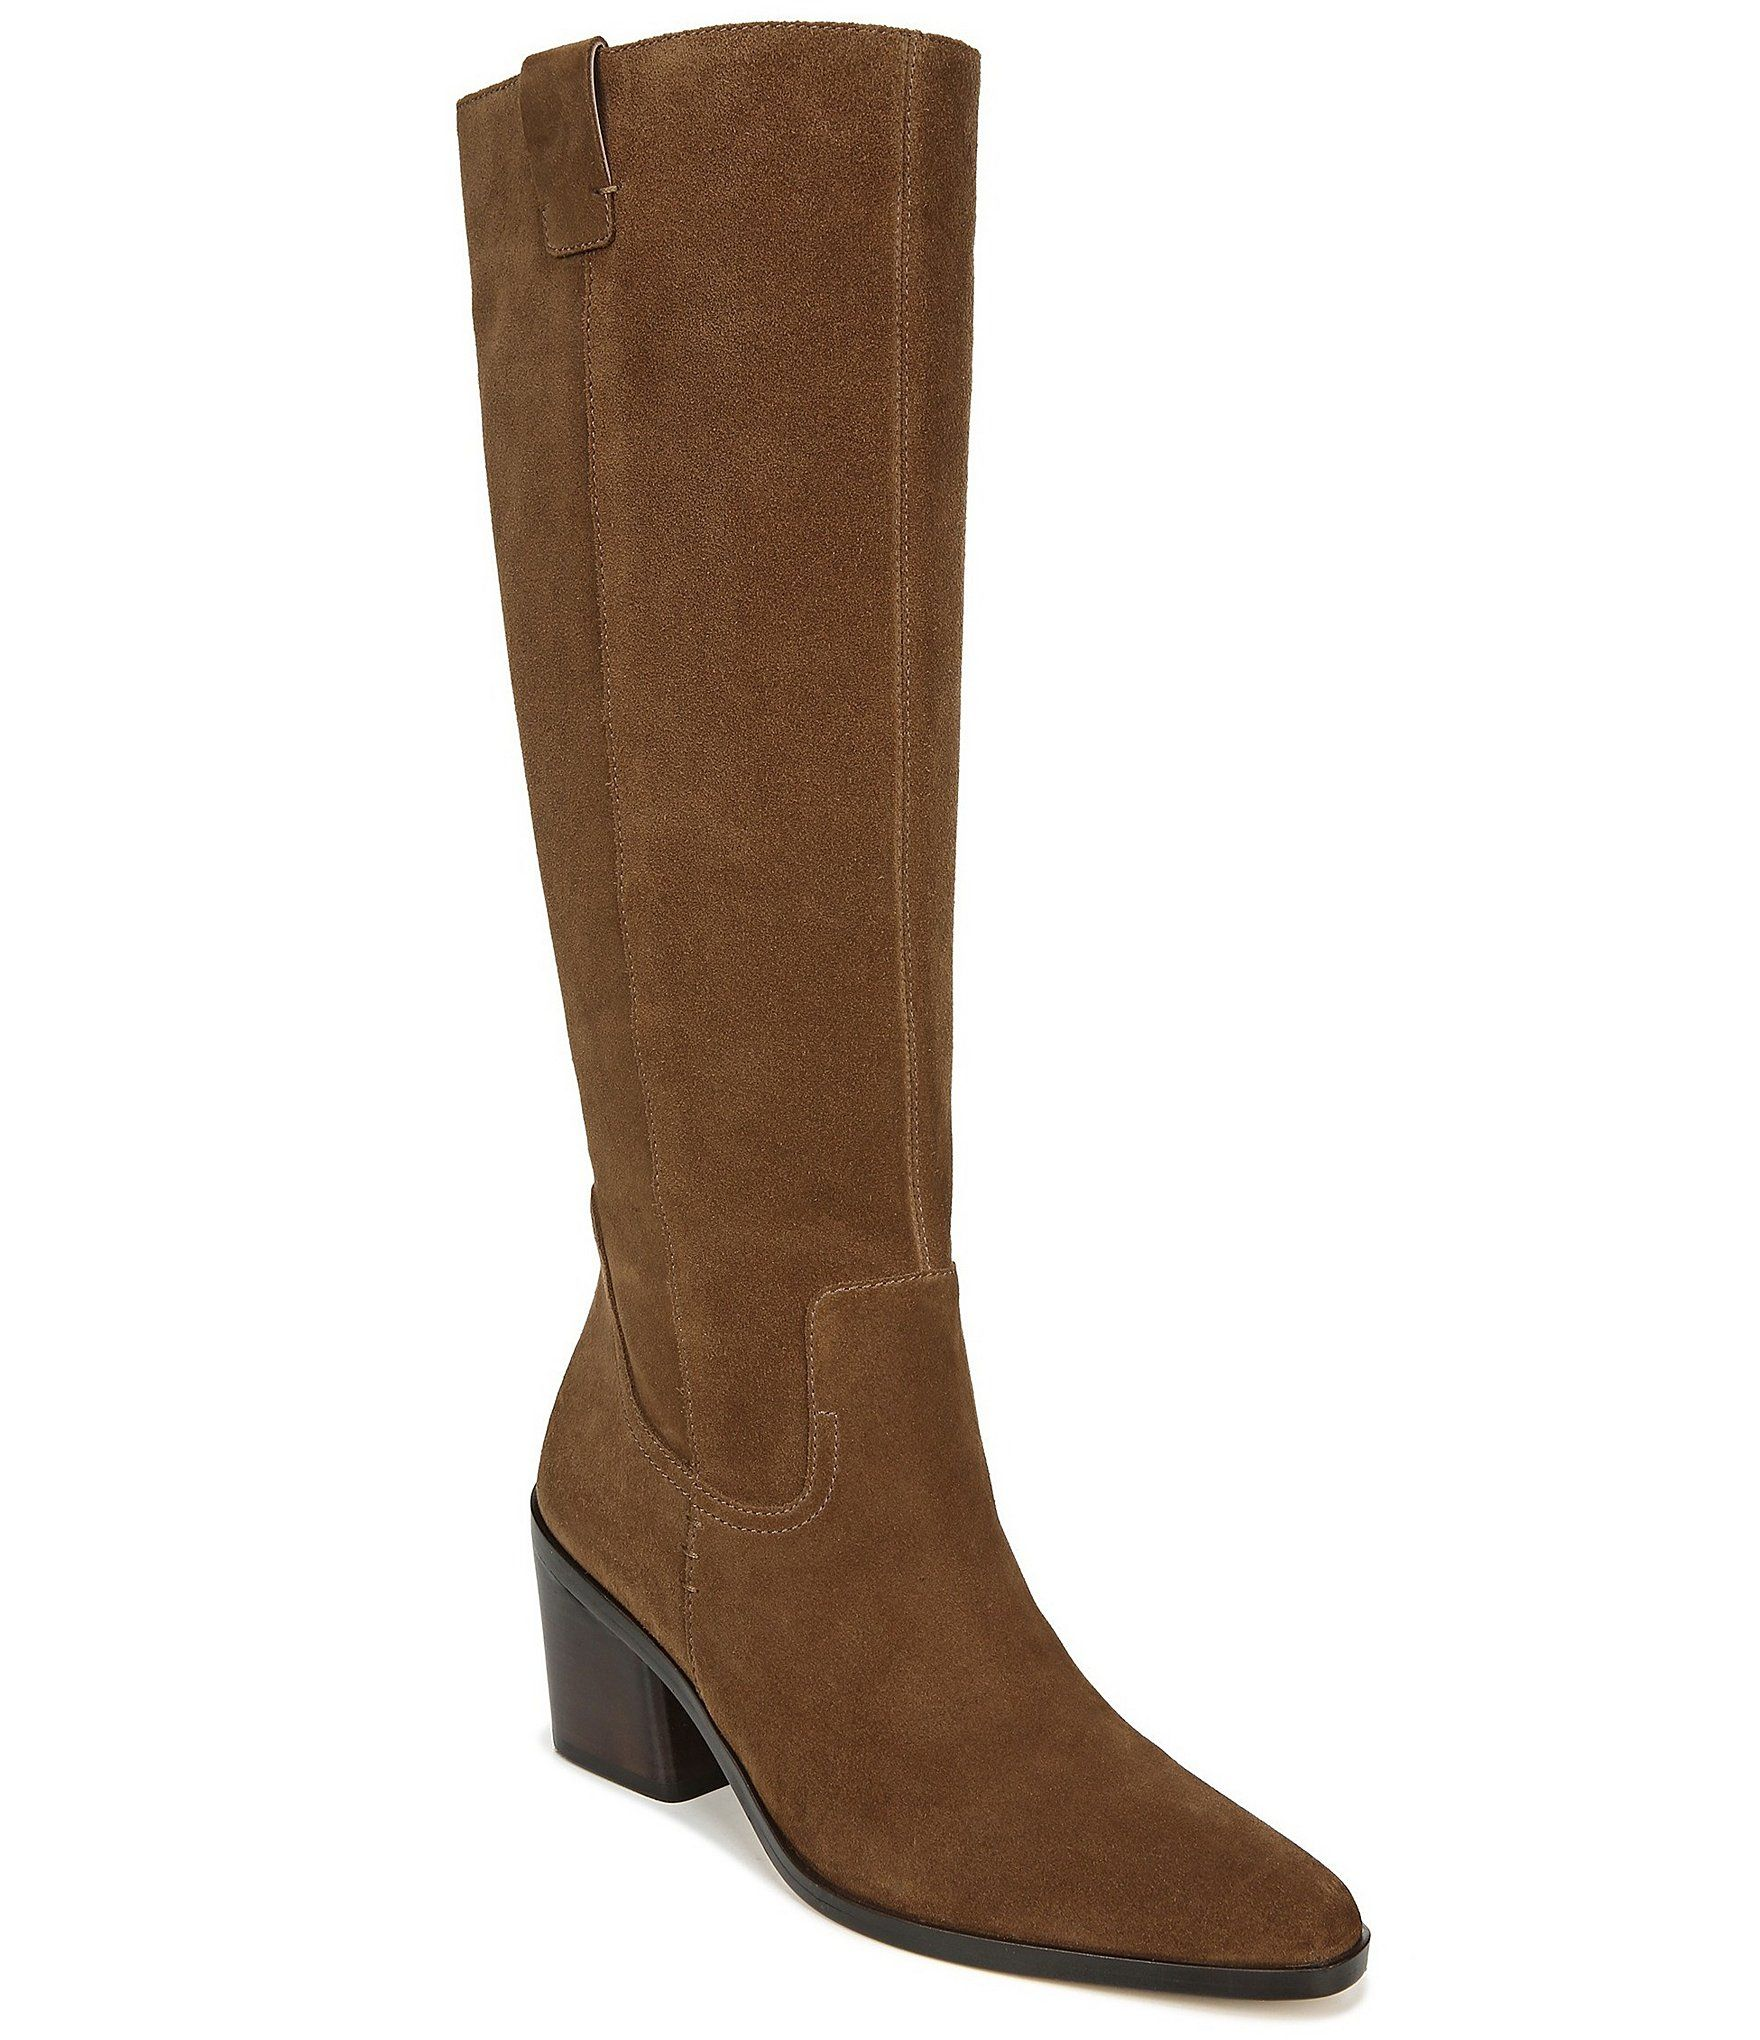 27 EDIT Bellamy Suede Tall Shaft Block Heel Boots – Chestnut Suede 10W